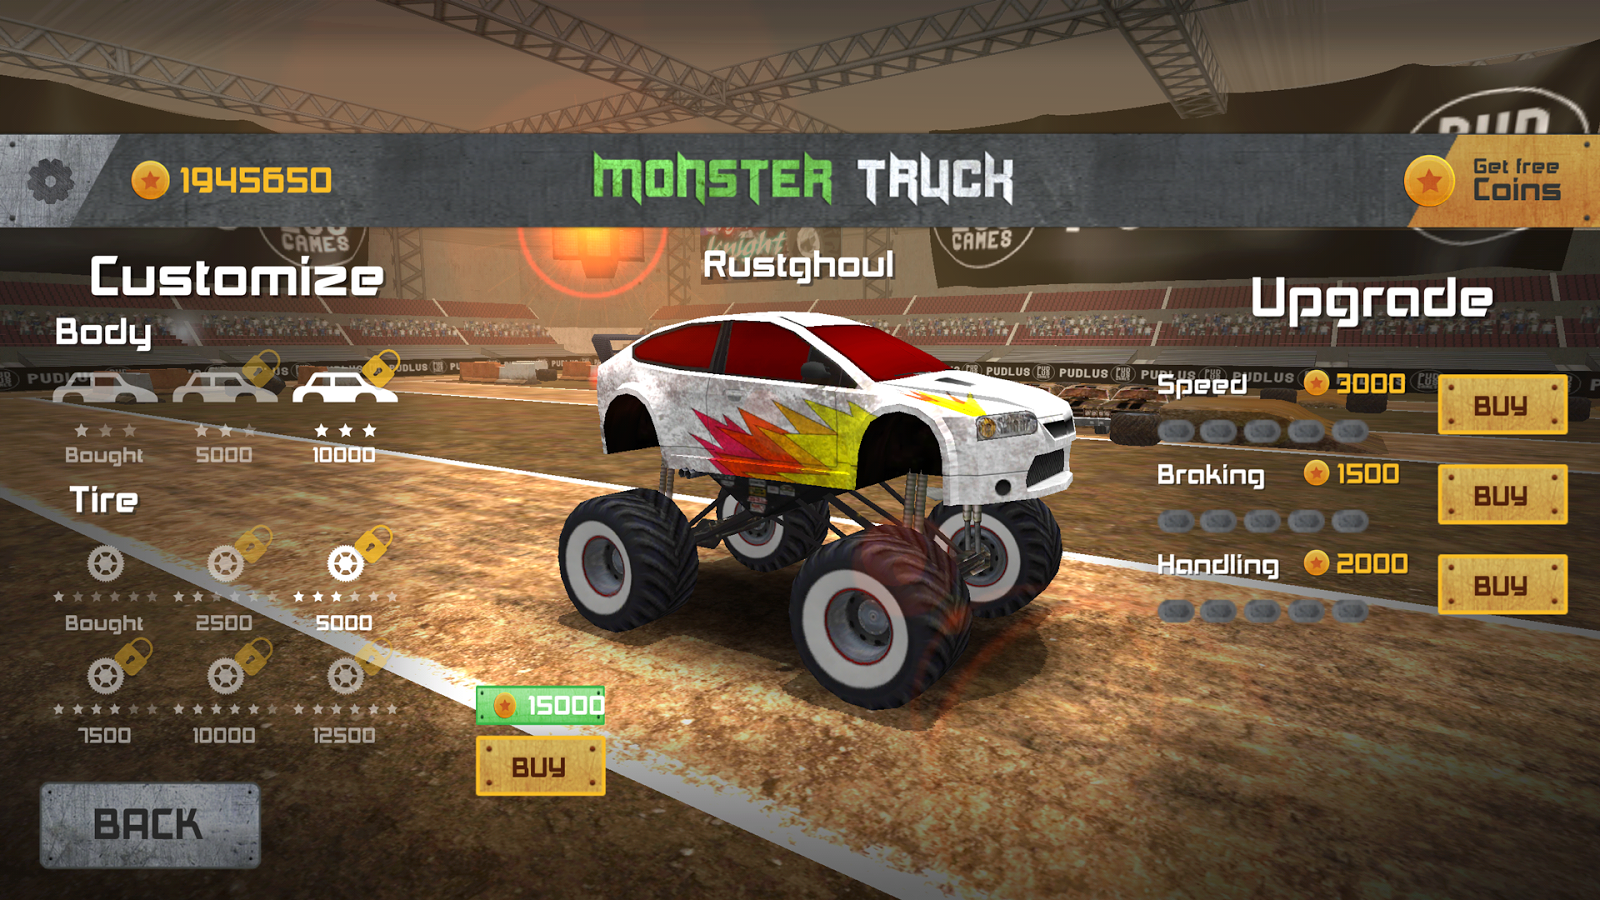 Monster Truck Race Screenshot 2